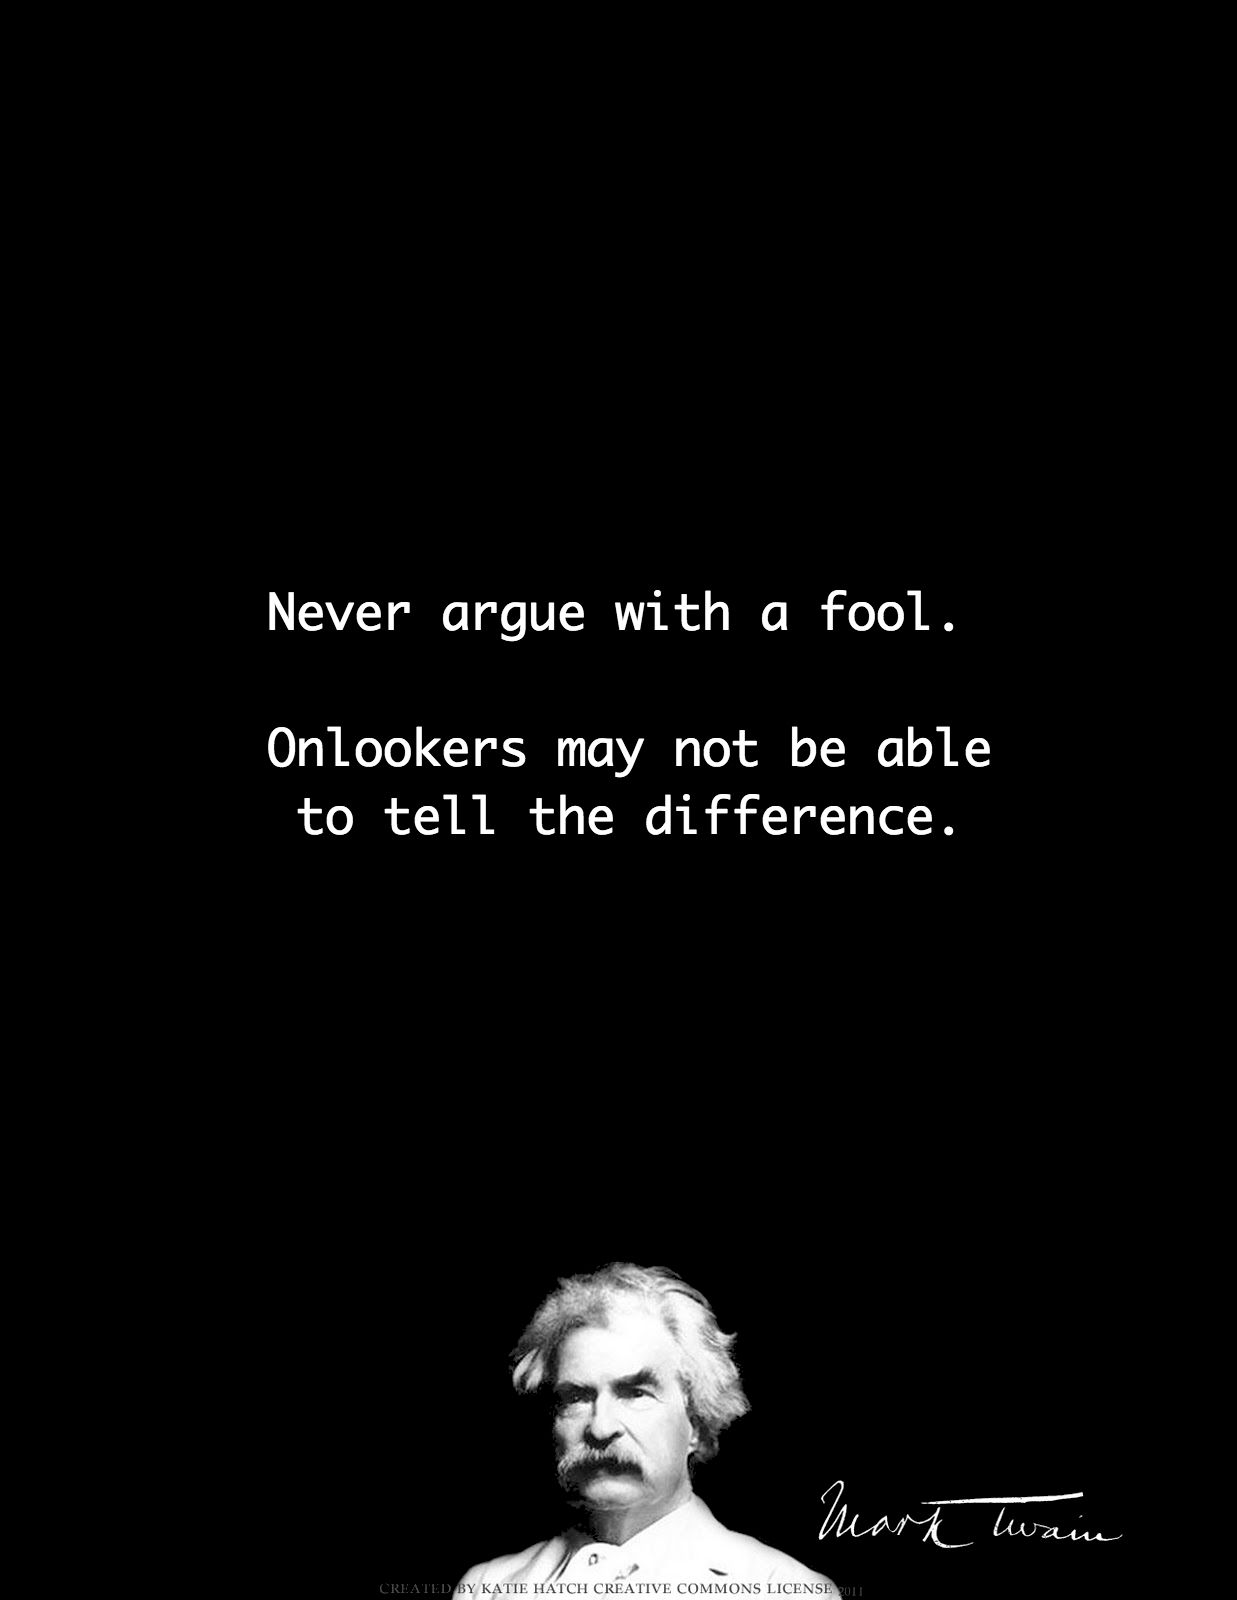 Quotenever Argue With A Fool Onlookers May Not Be Able To Tell